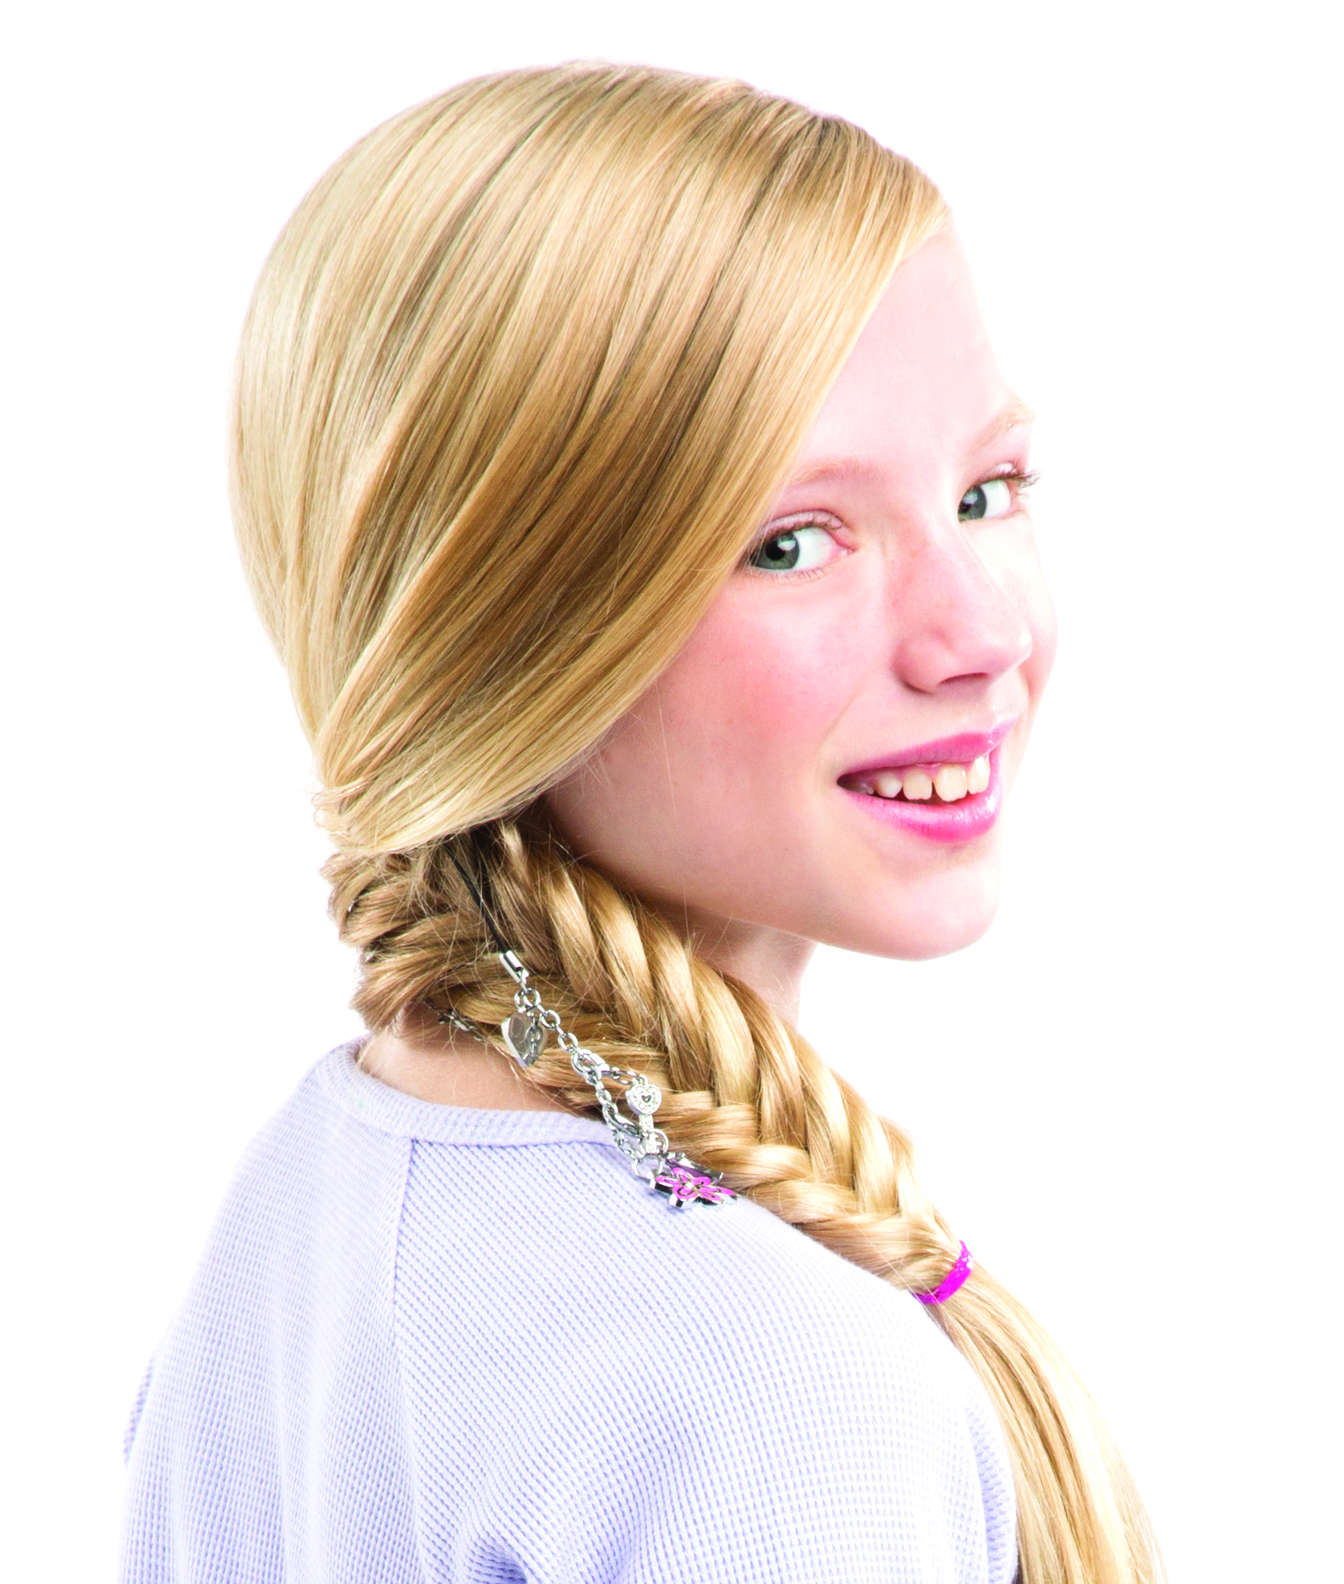 New Hair Fling, designed by tweens for tweens